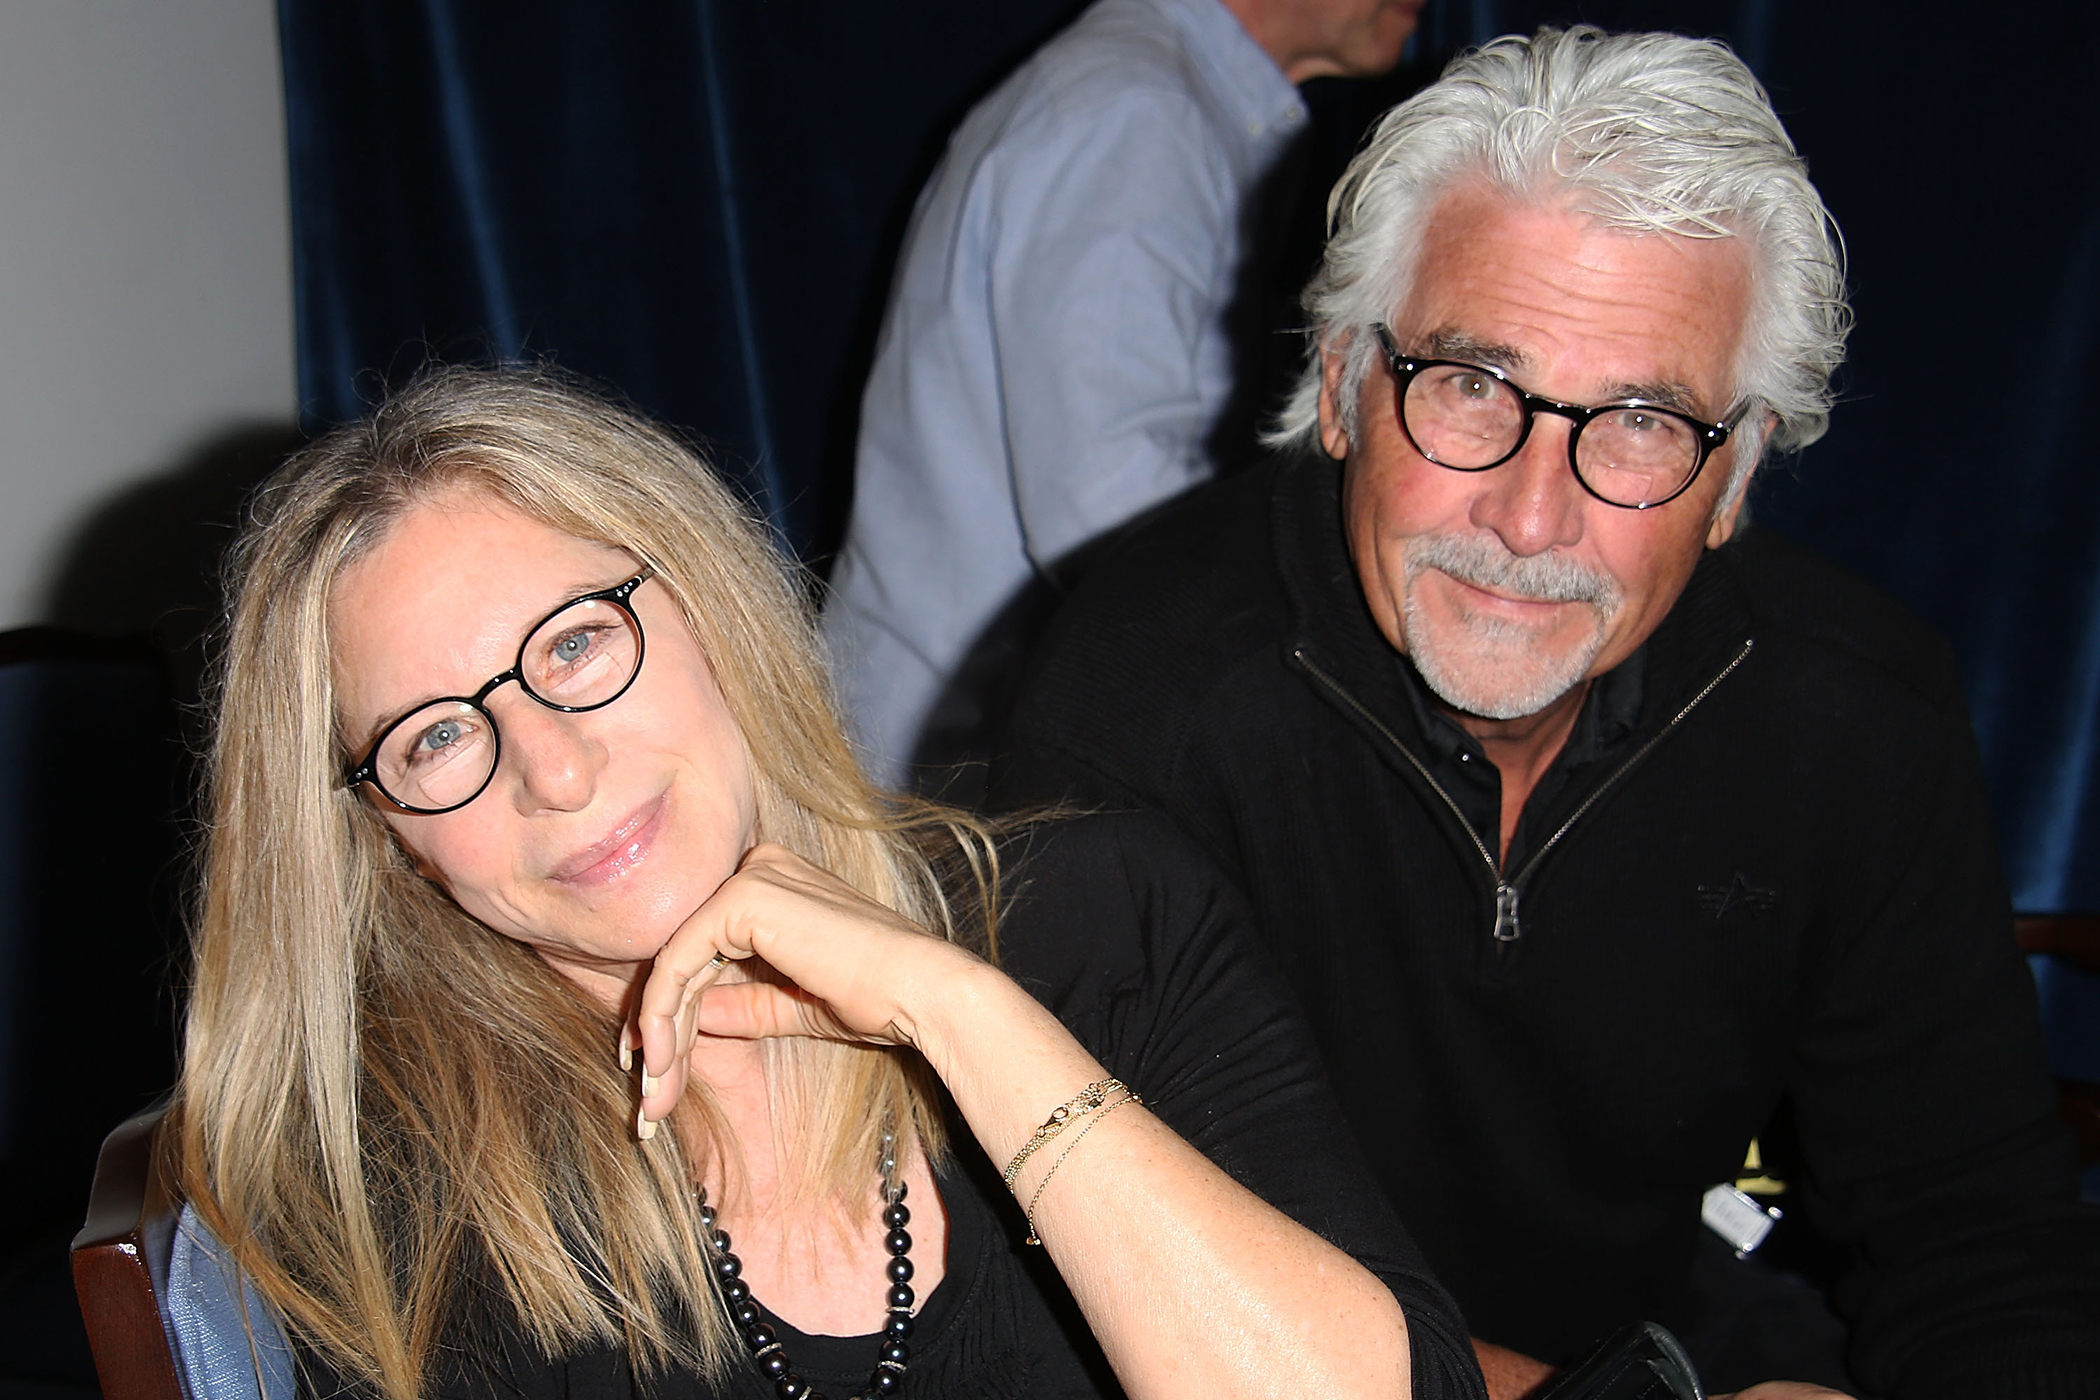 170706-richer-wives-barbra-streisand-james-brolin